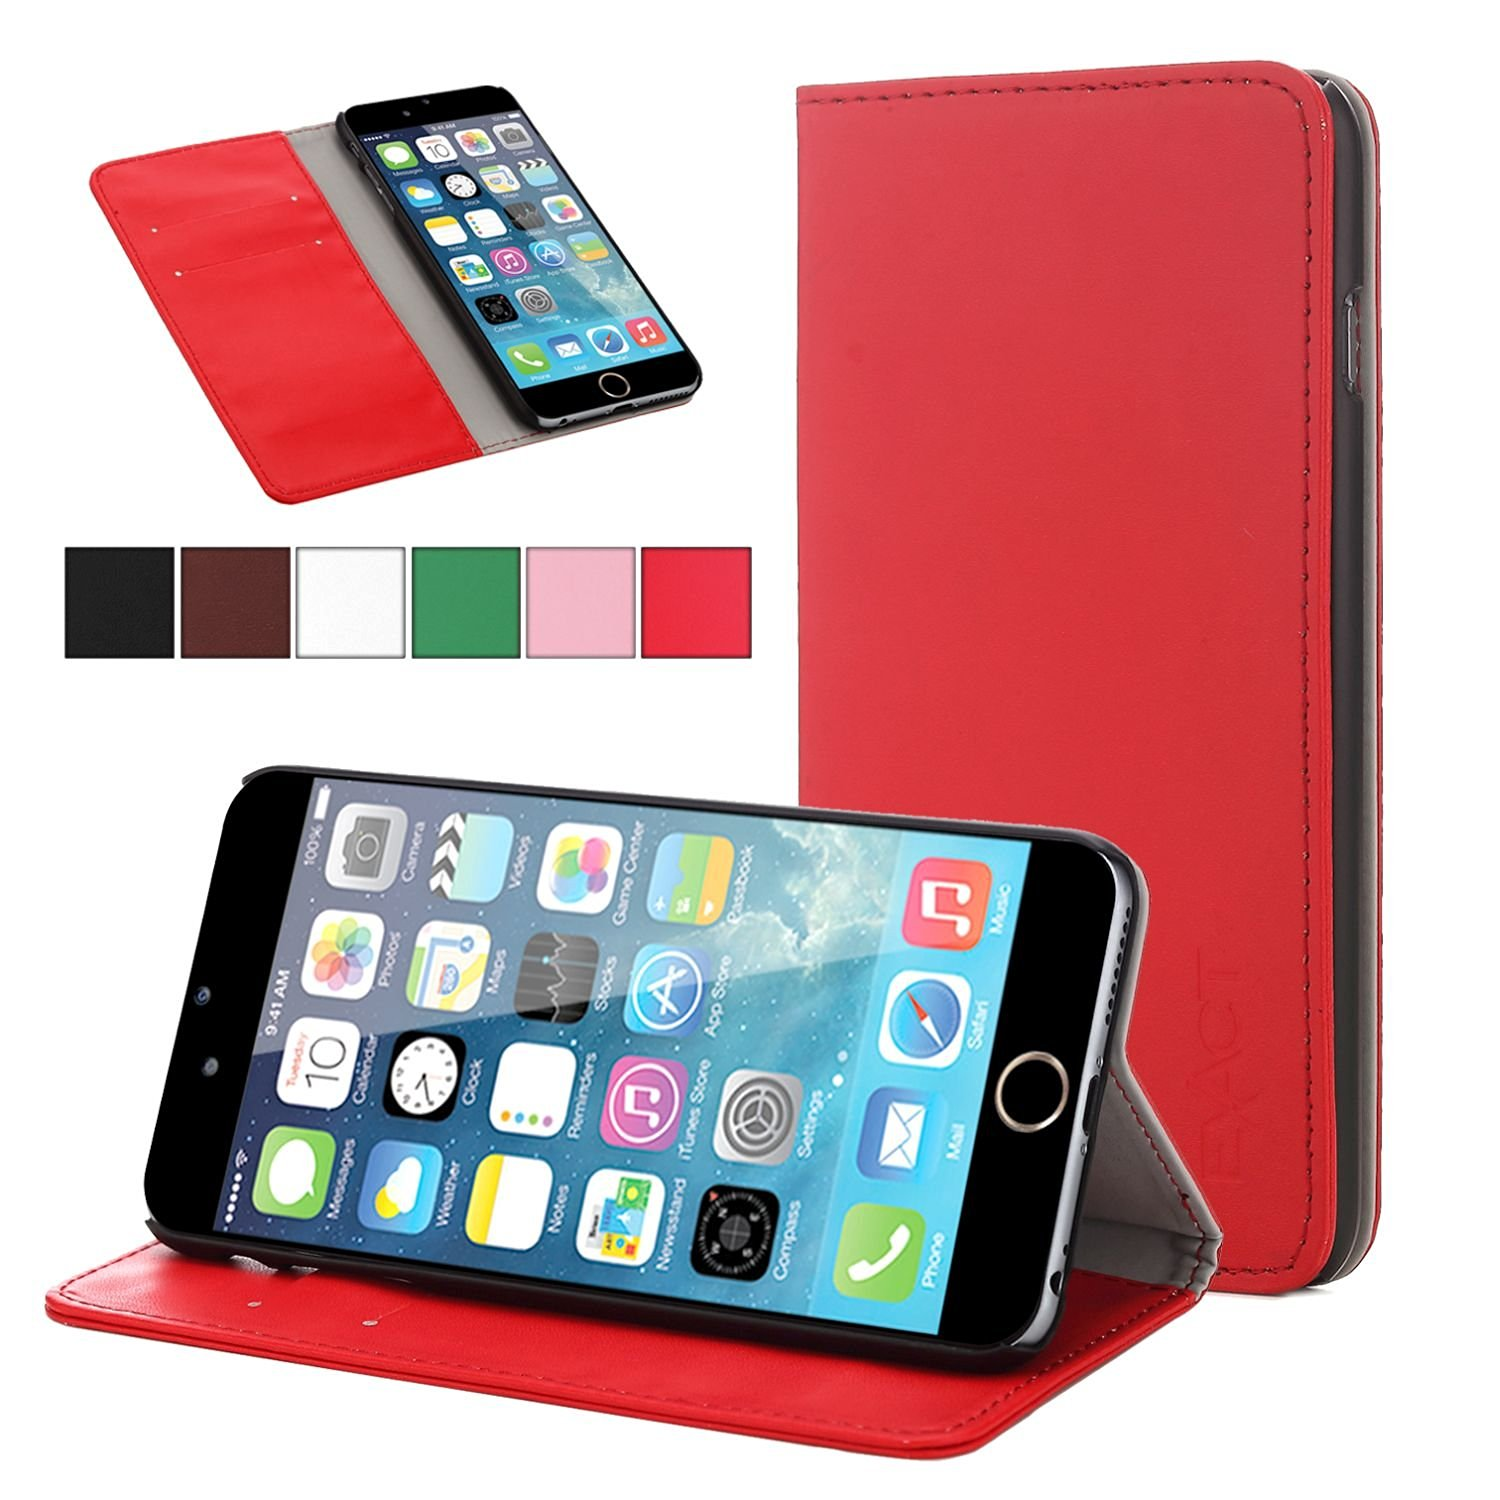 iPhone 6 Plus Case - Exact Apple iPhone 6 Plus 5.5 Case [BillFOLD Series] - PU Leather Wallet Flip Cover Case for Apple iPhone 6 Plus (5.5-inch)Red